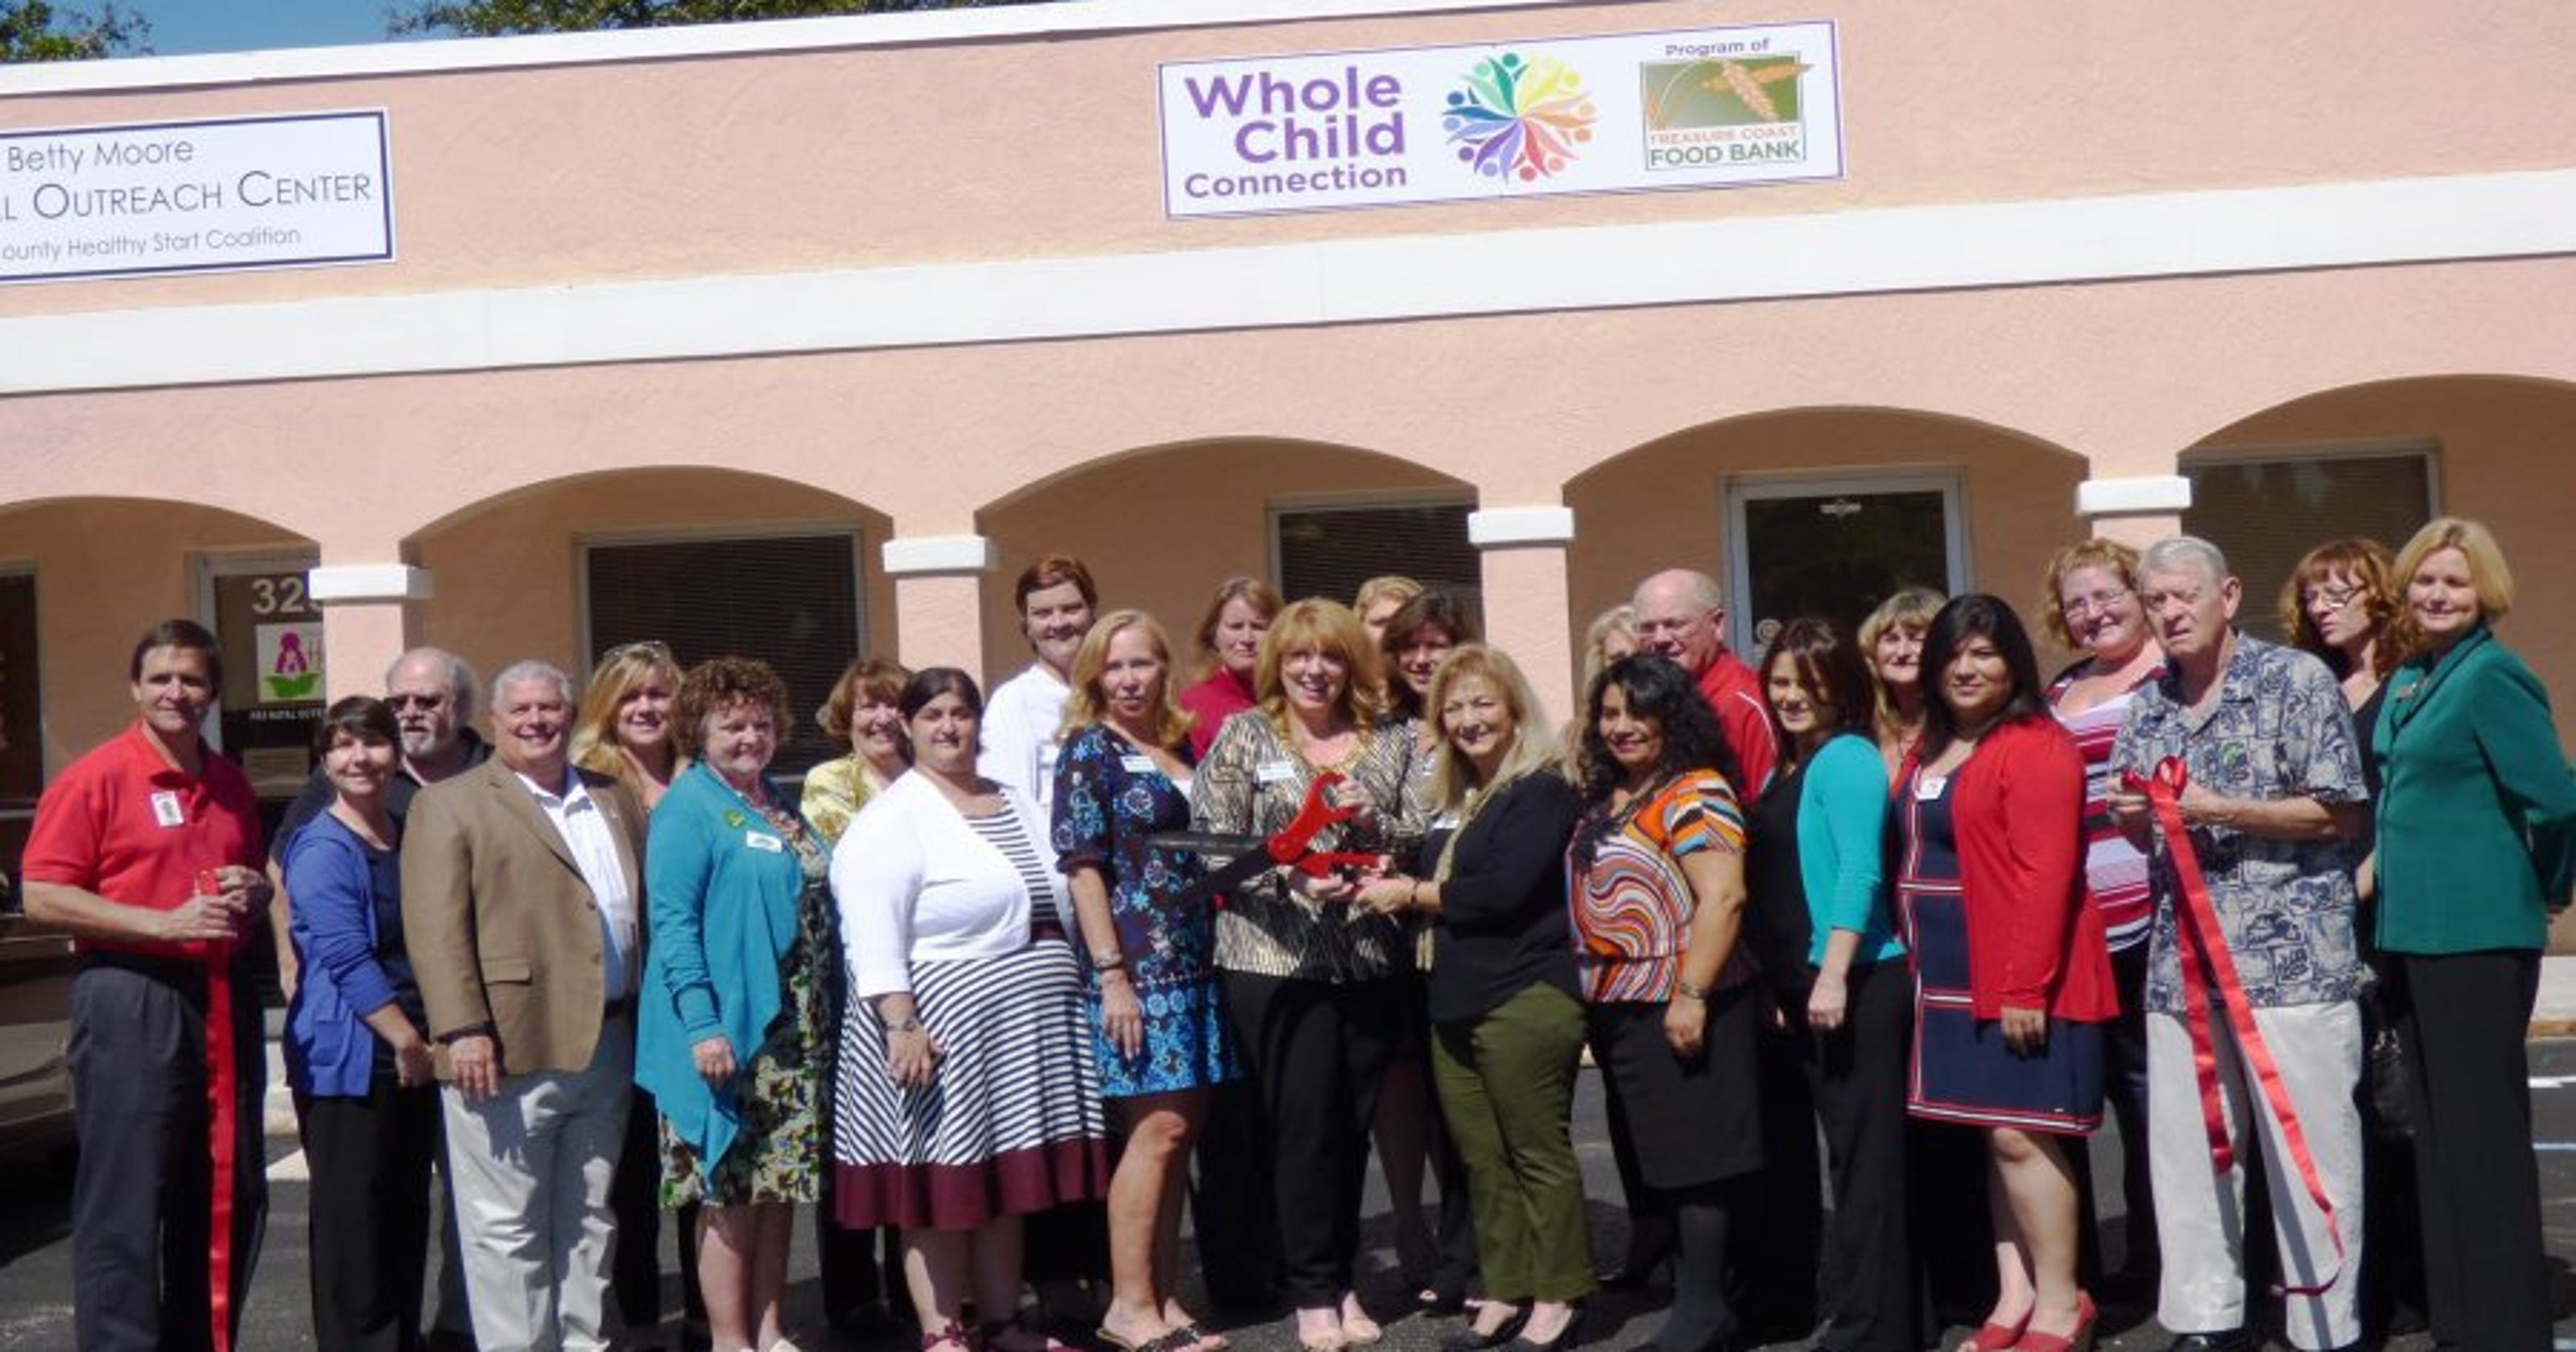 Treasure Coast Food Bank expands Whole Child Connection